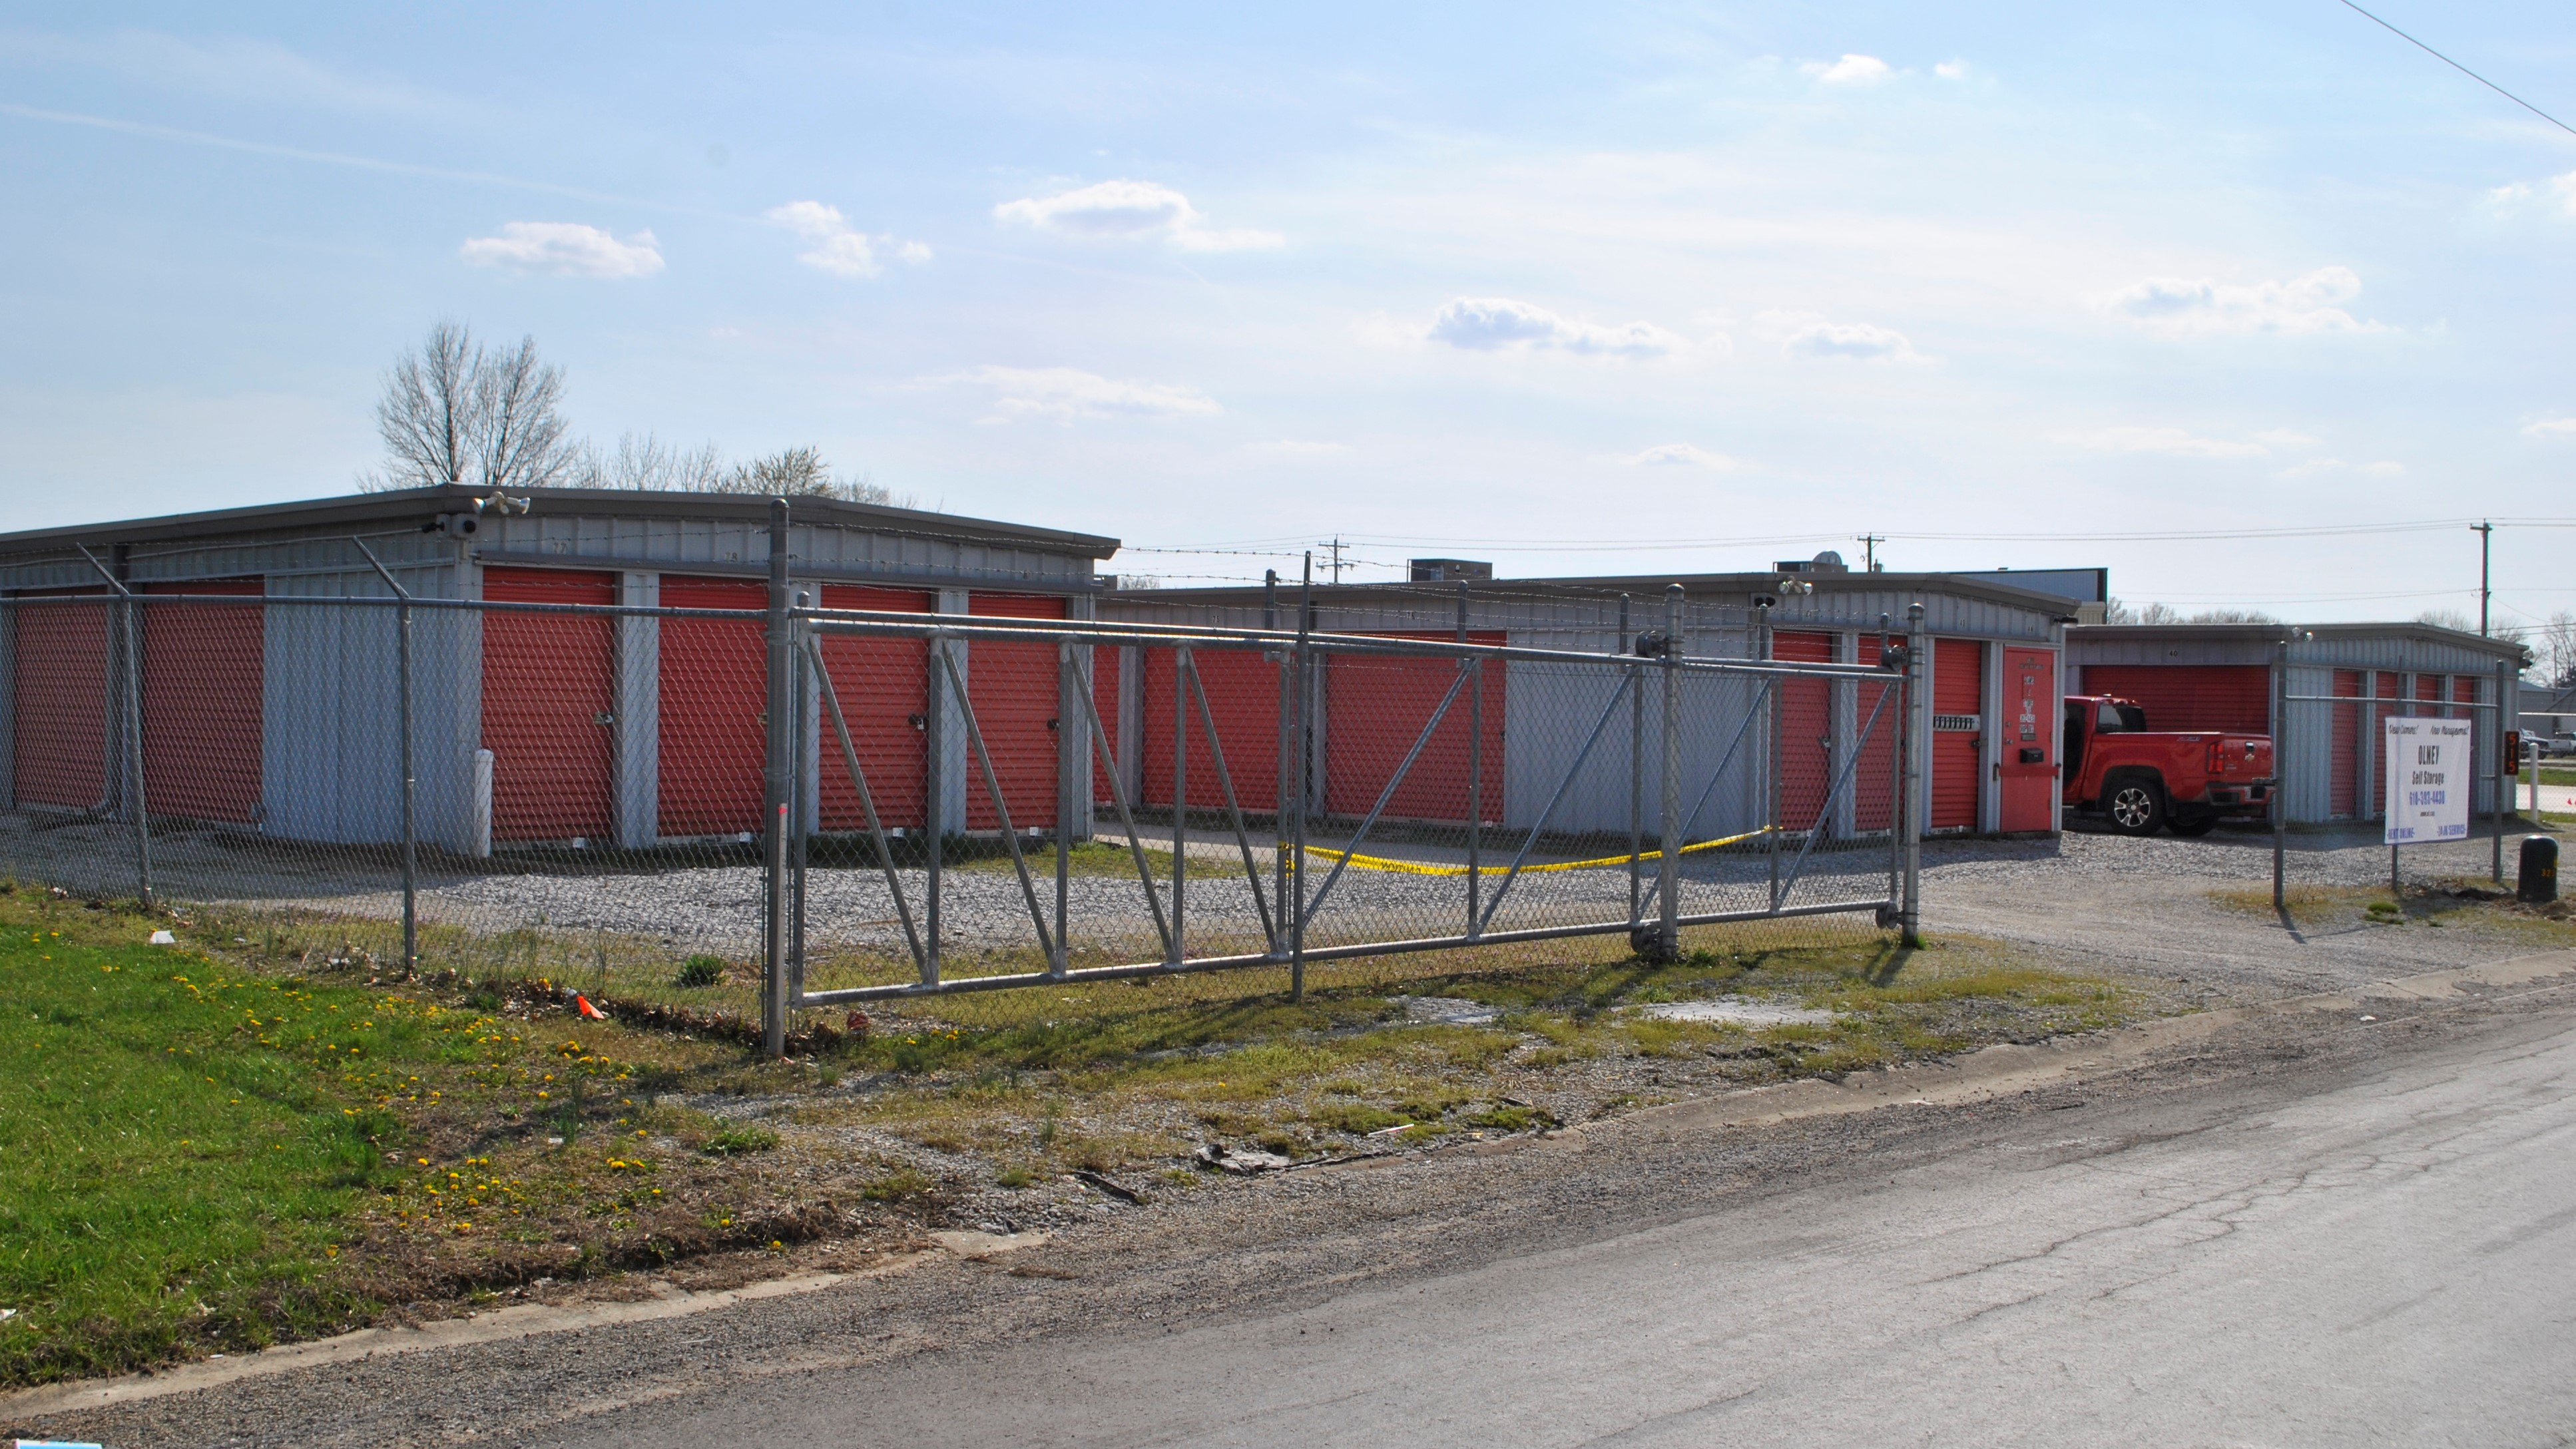 self storage facility with open front gate